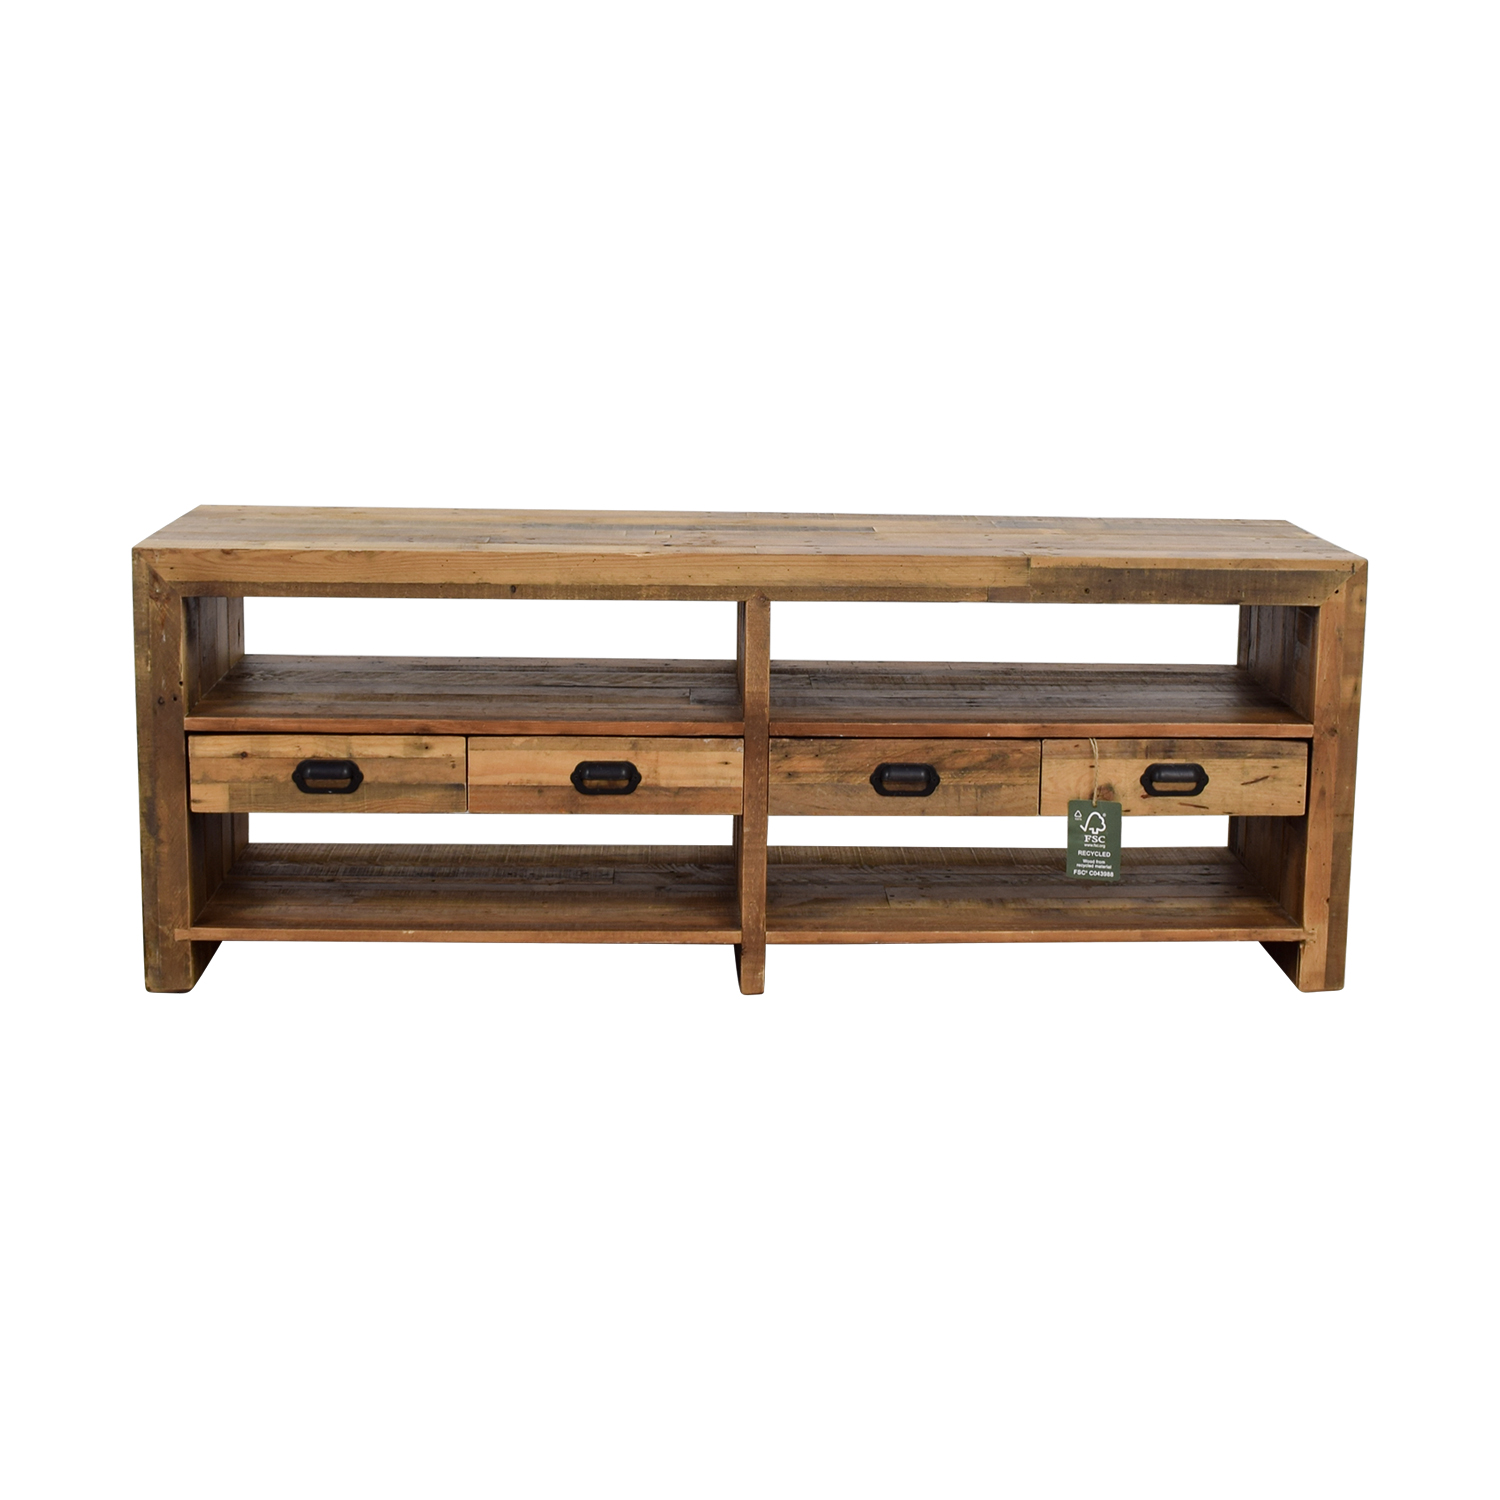 ABC Carpet & Home ABC Carpet & Home Rustic Wood TV Console Storage